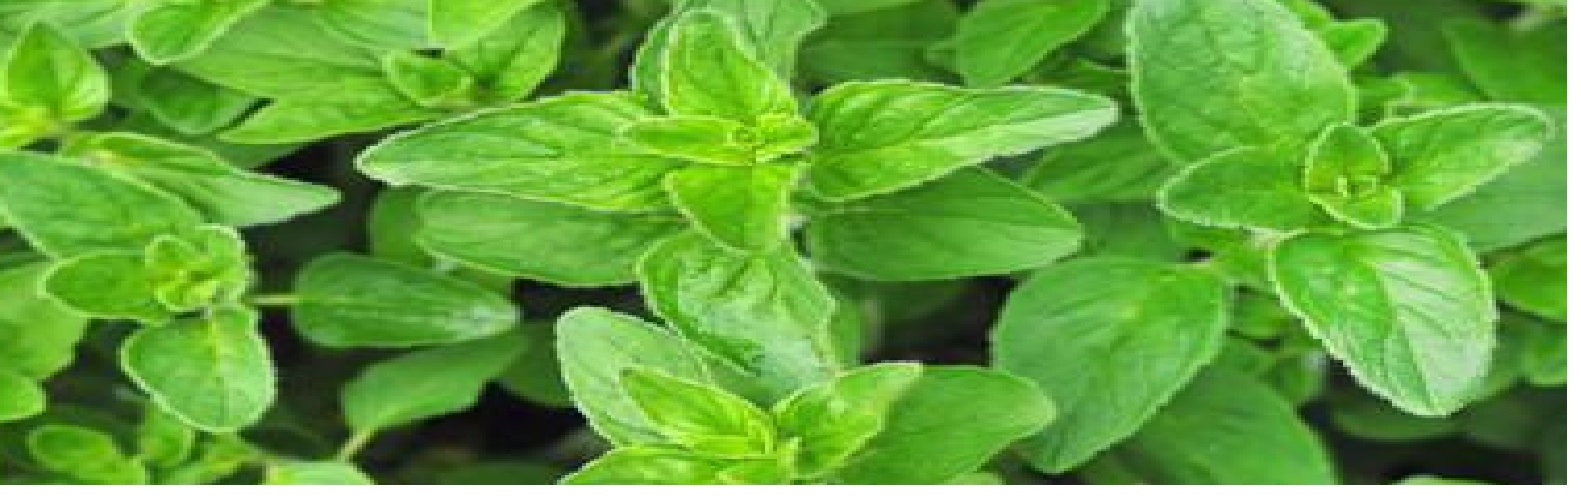 Oregano - beneficial properties and contraindications for women, men and children 34